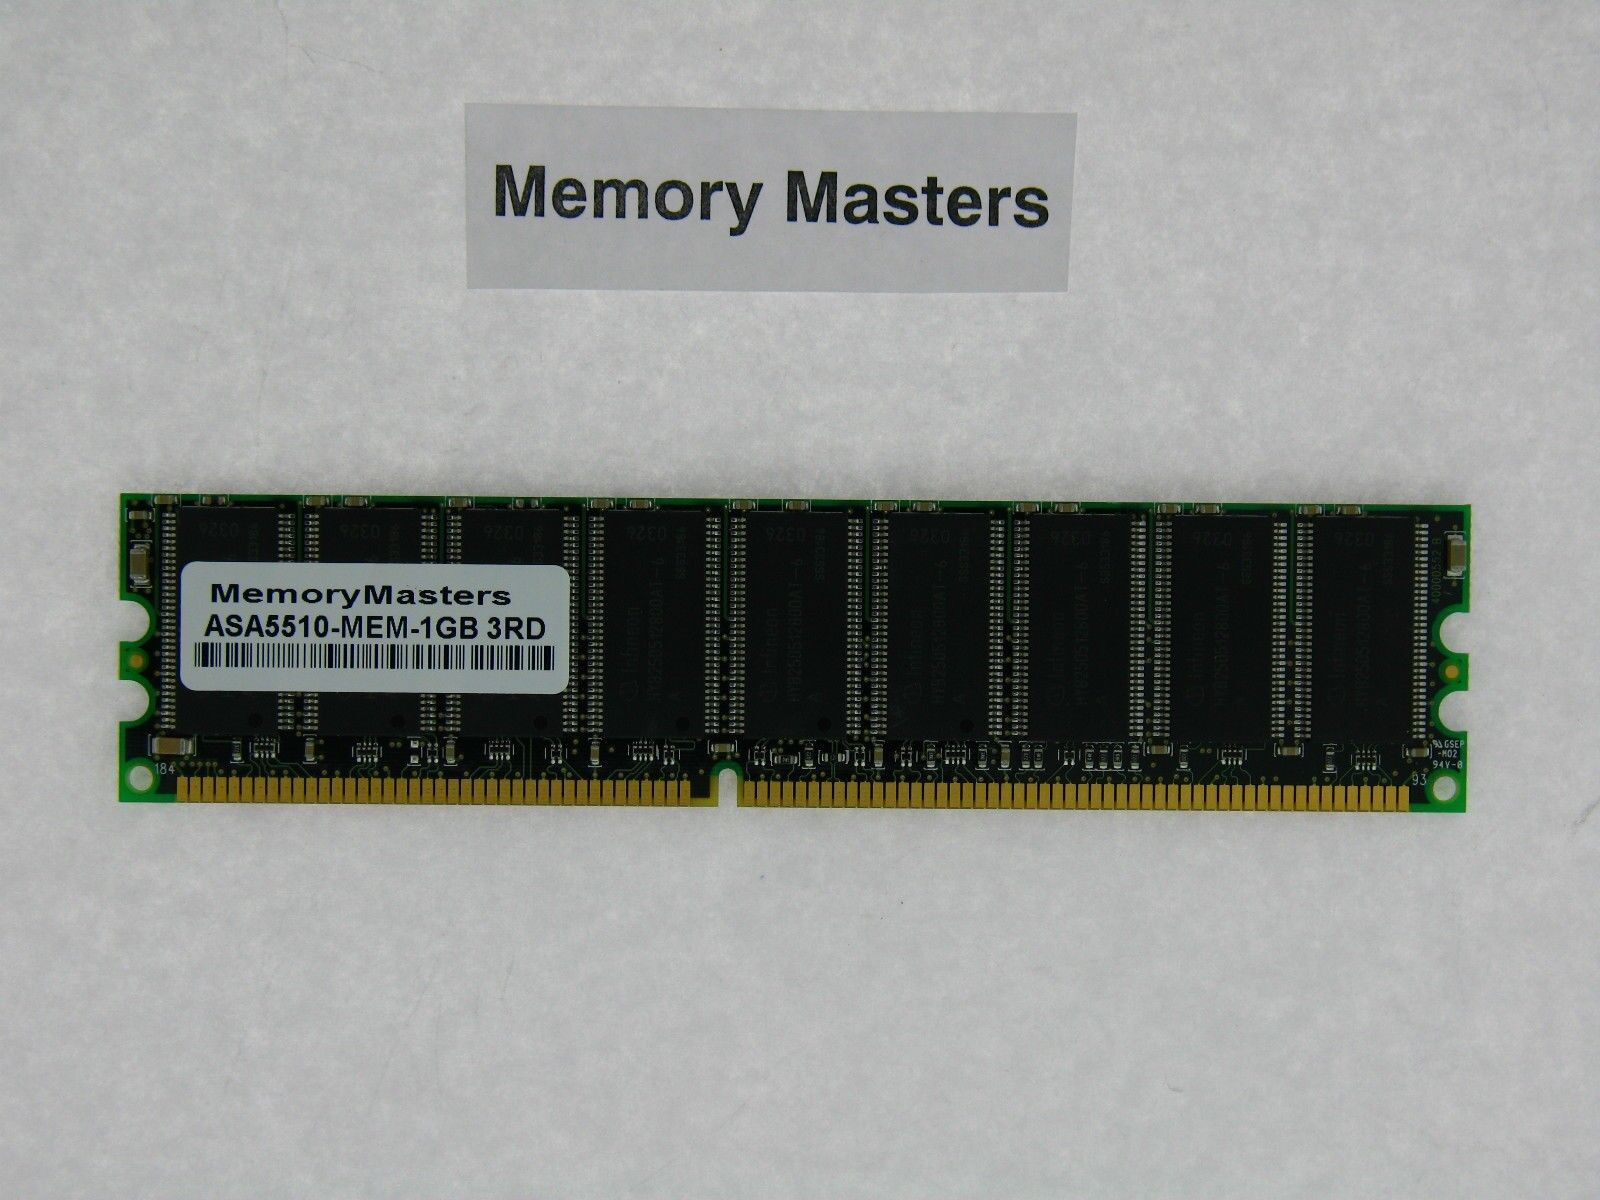 ASA5510-MEM-1GB 1GB memory for Cisco ASA5510 New LOT 5